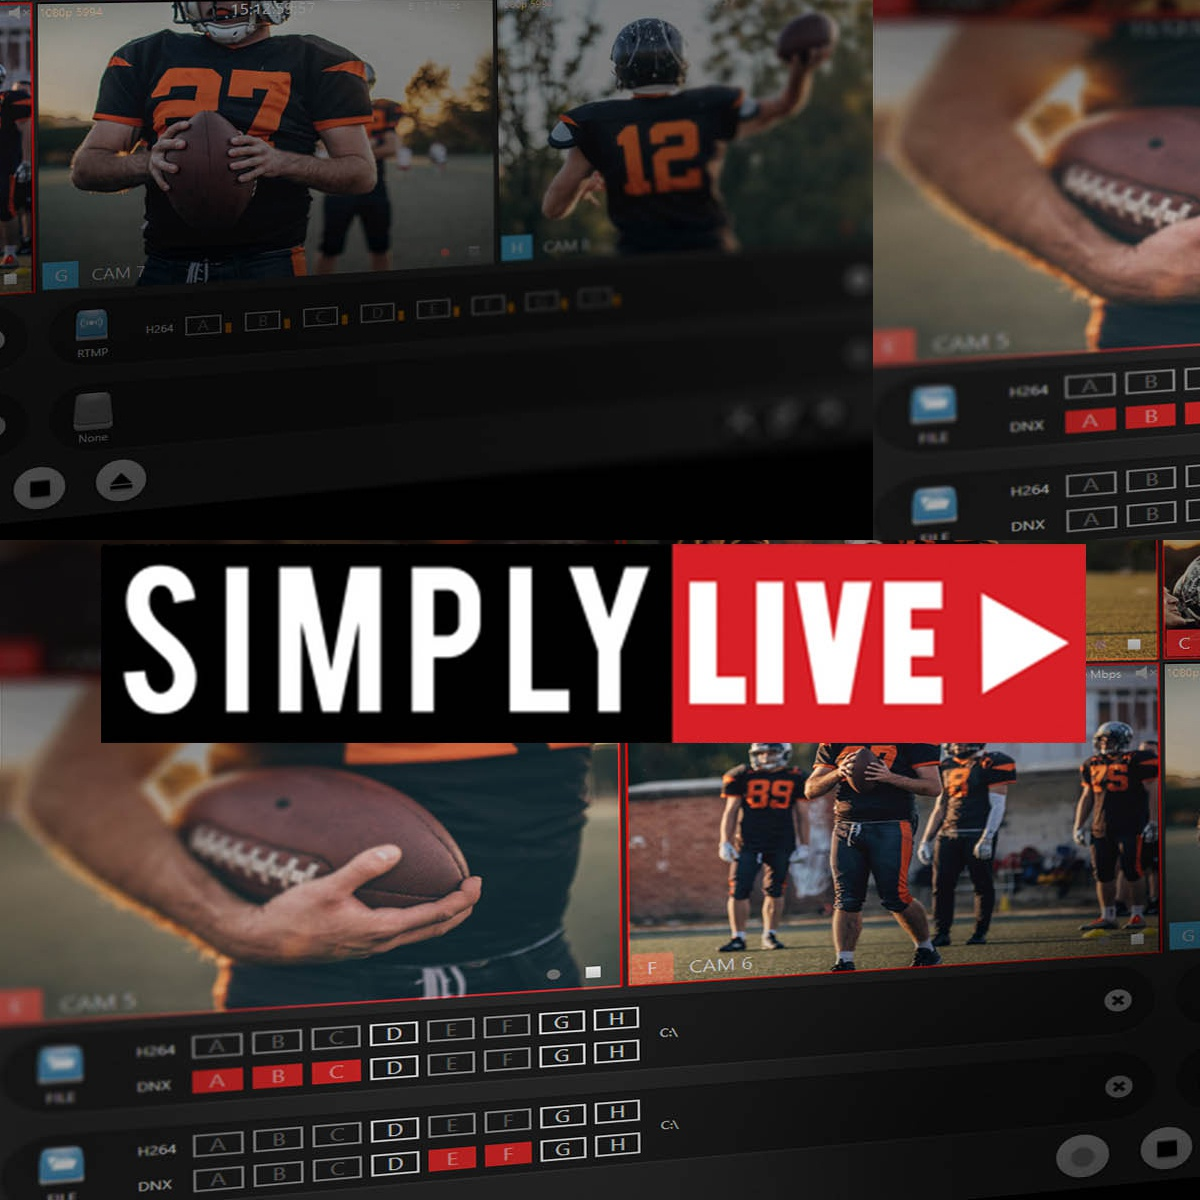 SIMPLYLIVE BMR Master Recording